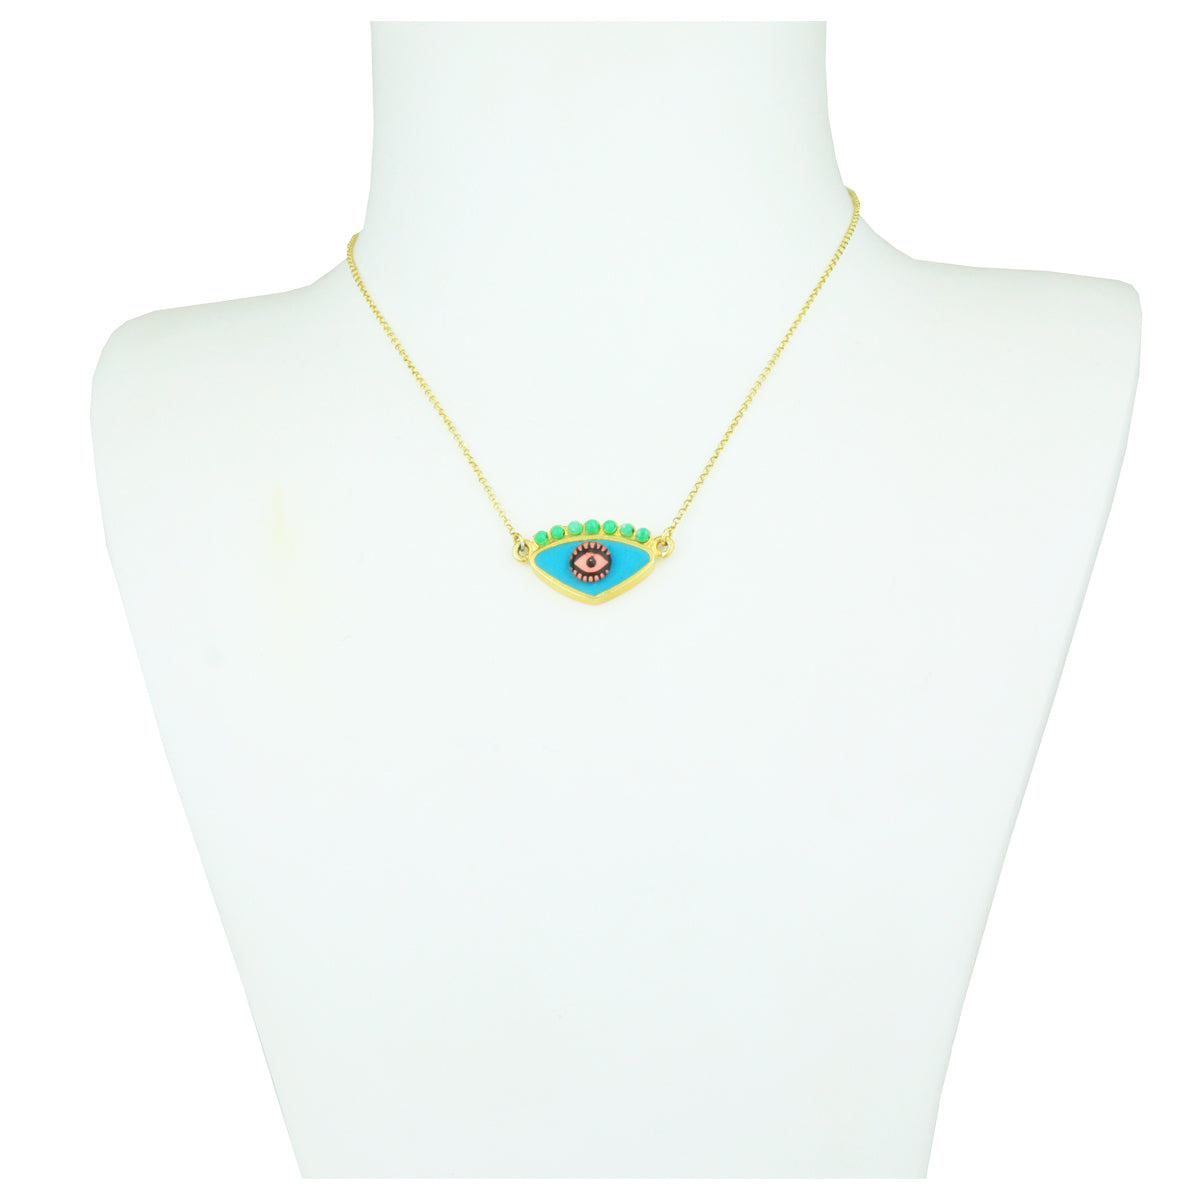 Gold Plated 925 Silver Turquoise Evil Eye Short Necklace